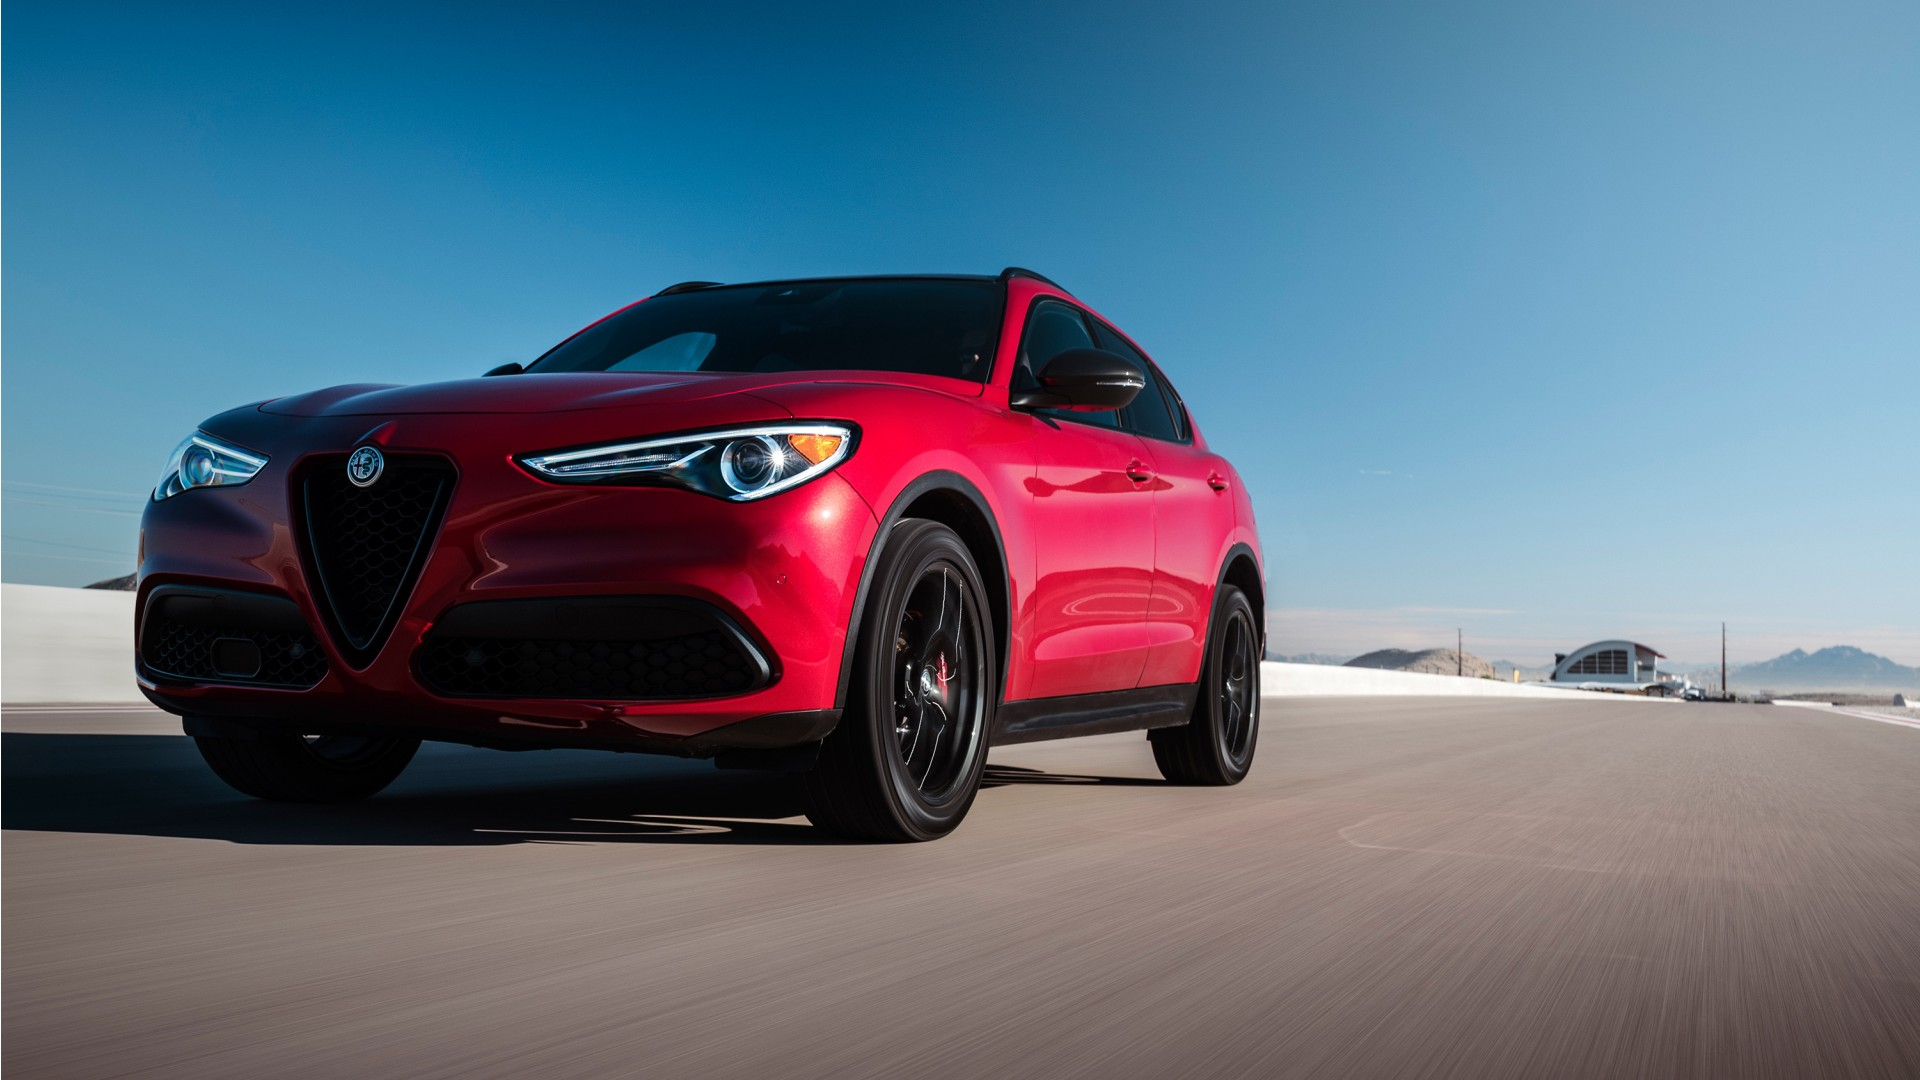 Alfa Romeo Suv >> 2018 Alfa Romeo Stelvio Nero Edizione Wallpaper | HD Car Wallpapers | ID #10102